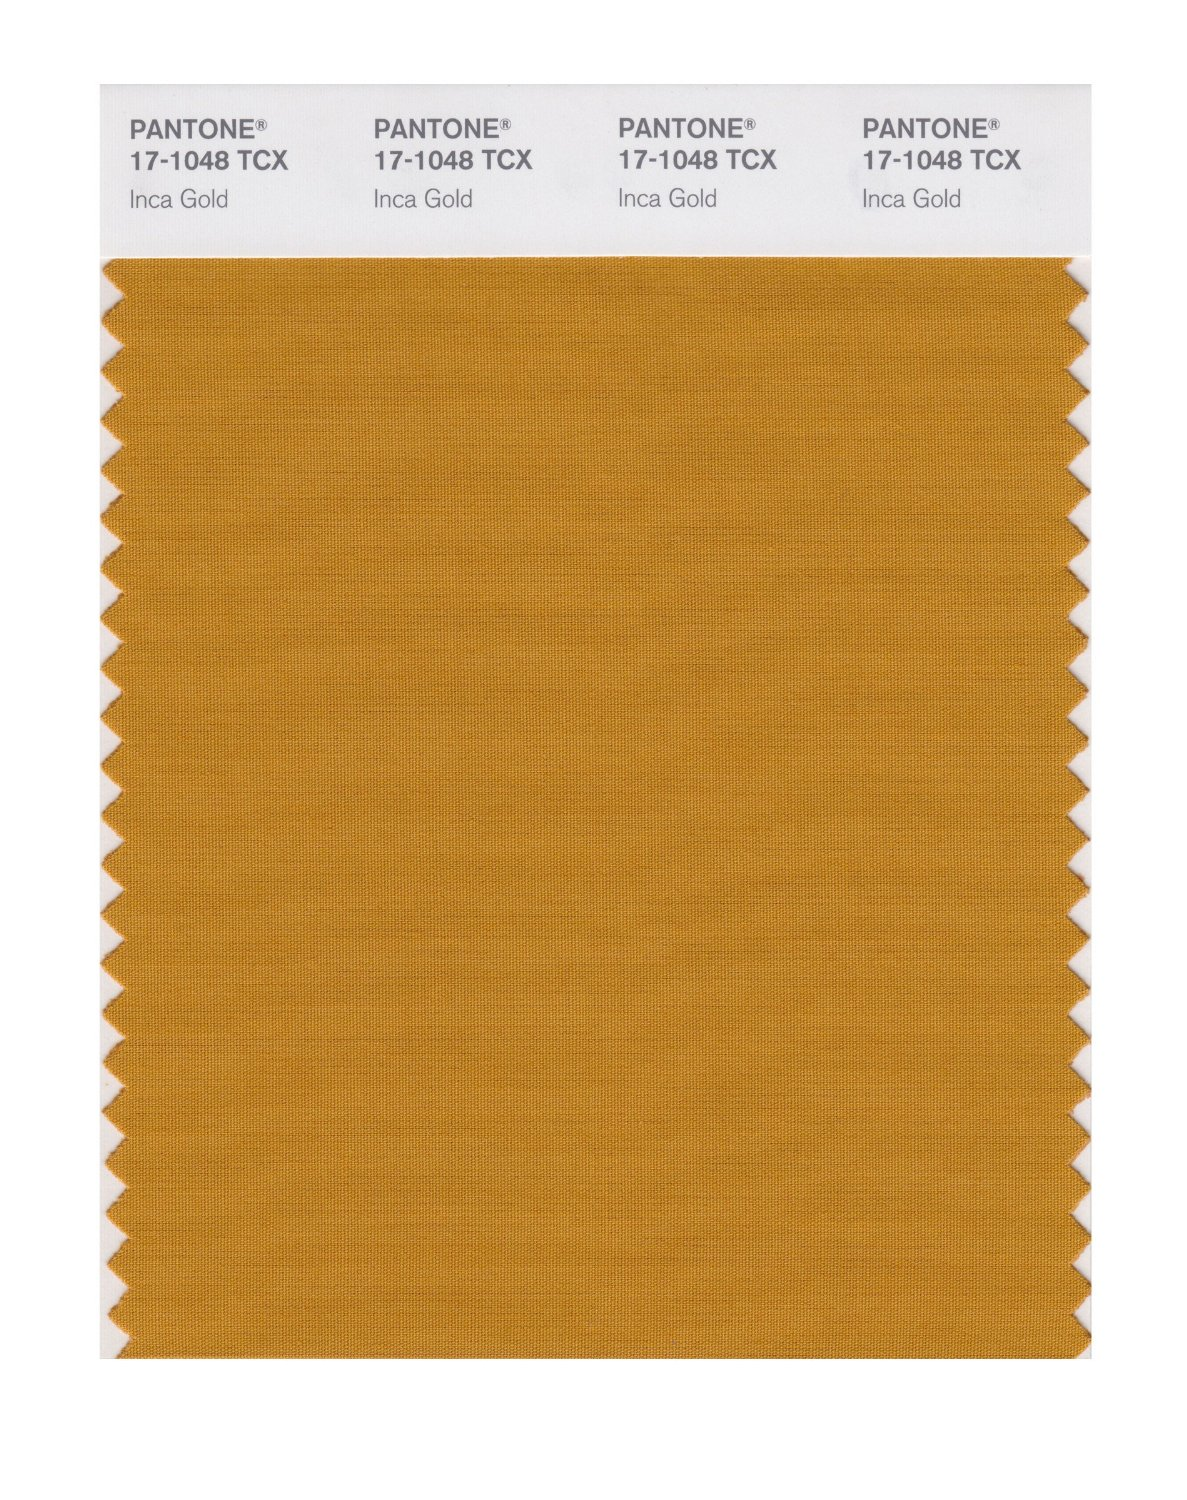 Pantone Smart Swatch 17-1048 Inca Gold